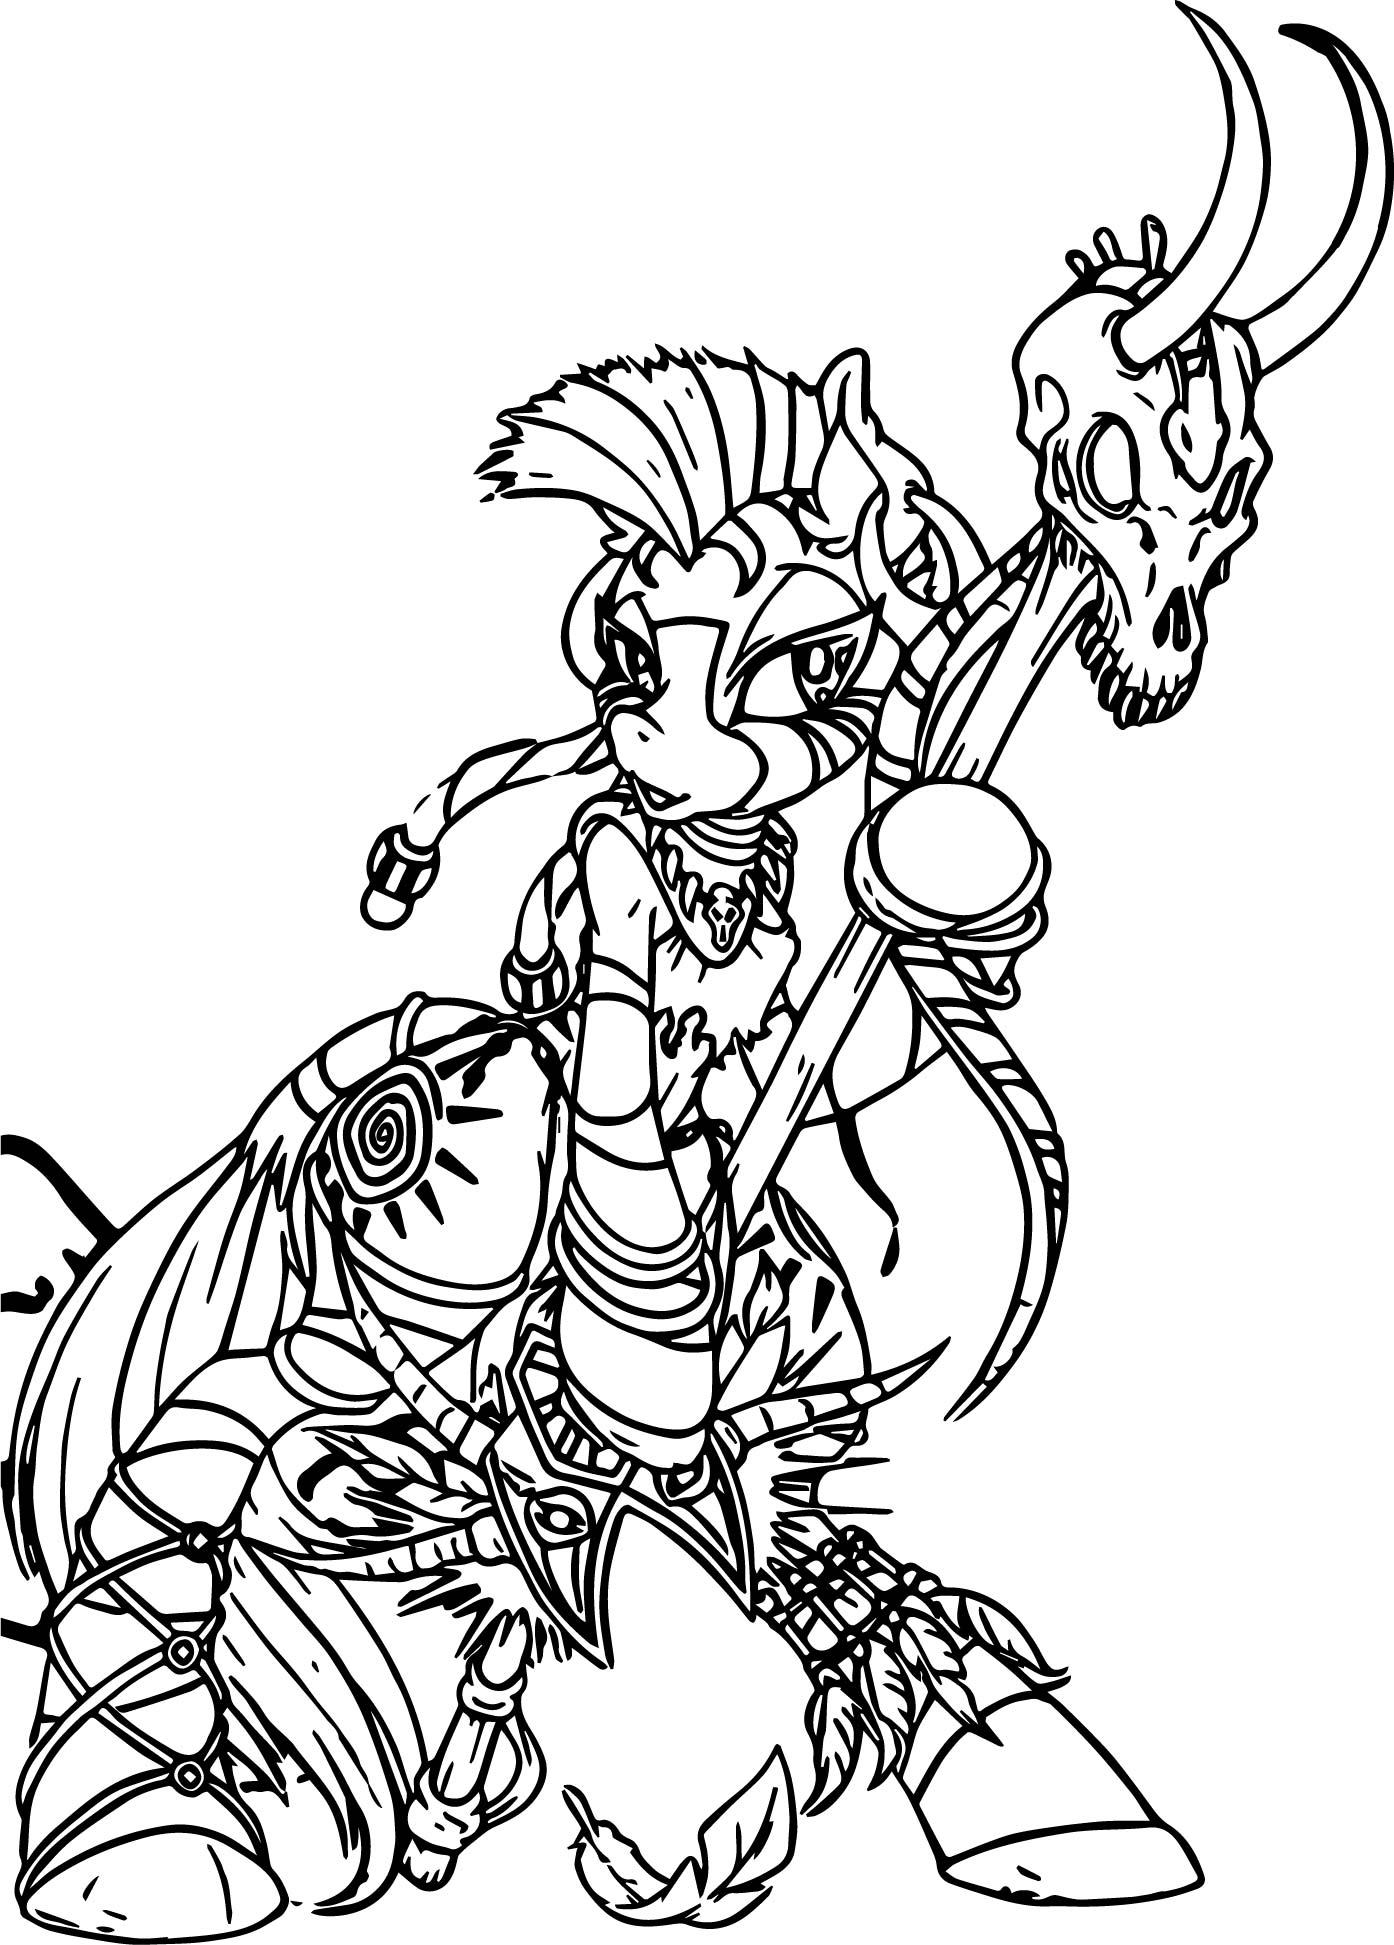 zecora witch doctor color anime apothecary coloring page